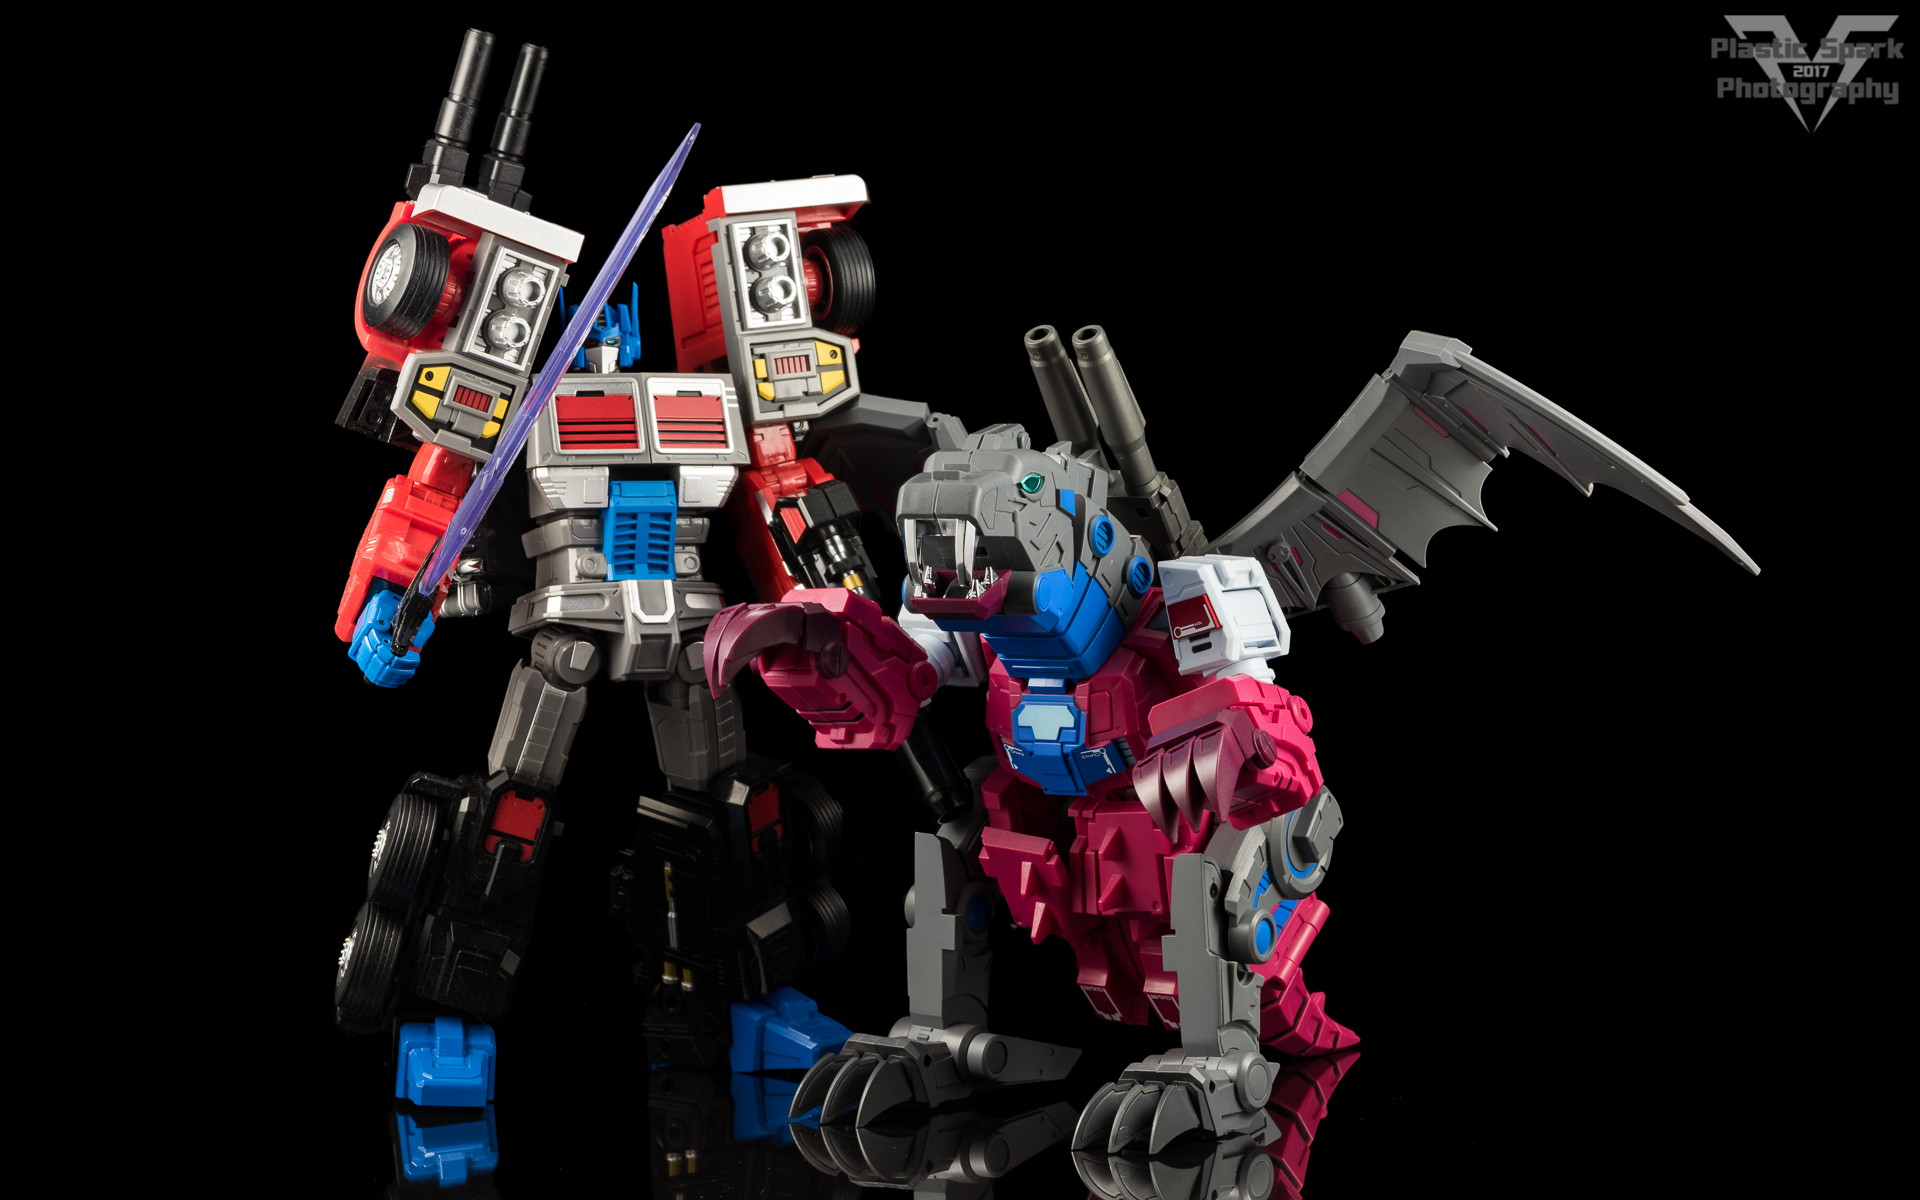 Fans-Hobby-MB-05-Flypro-(5-of-42).png